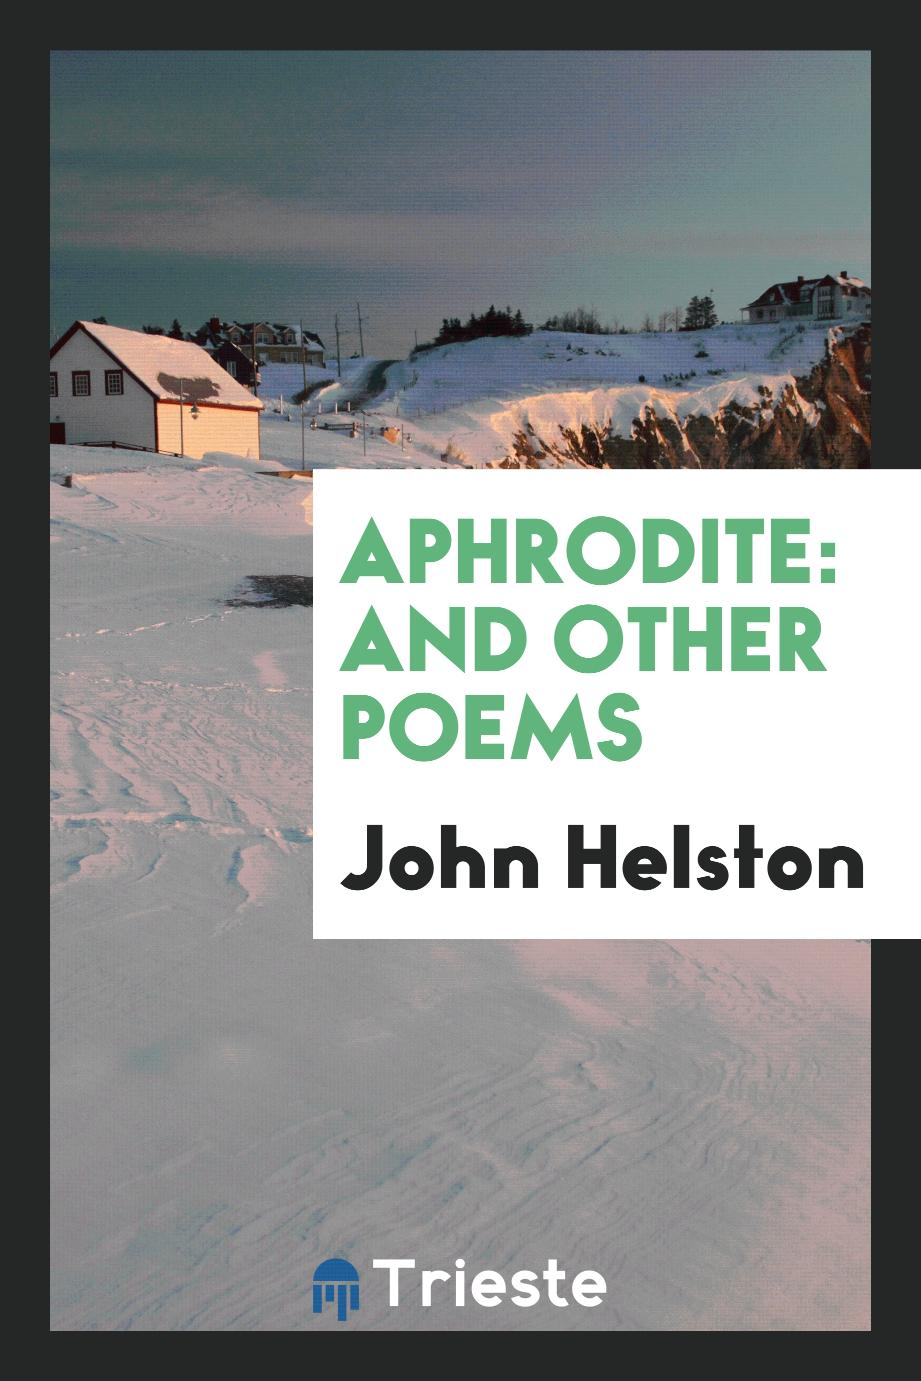 Aphrodite: And Other Poems